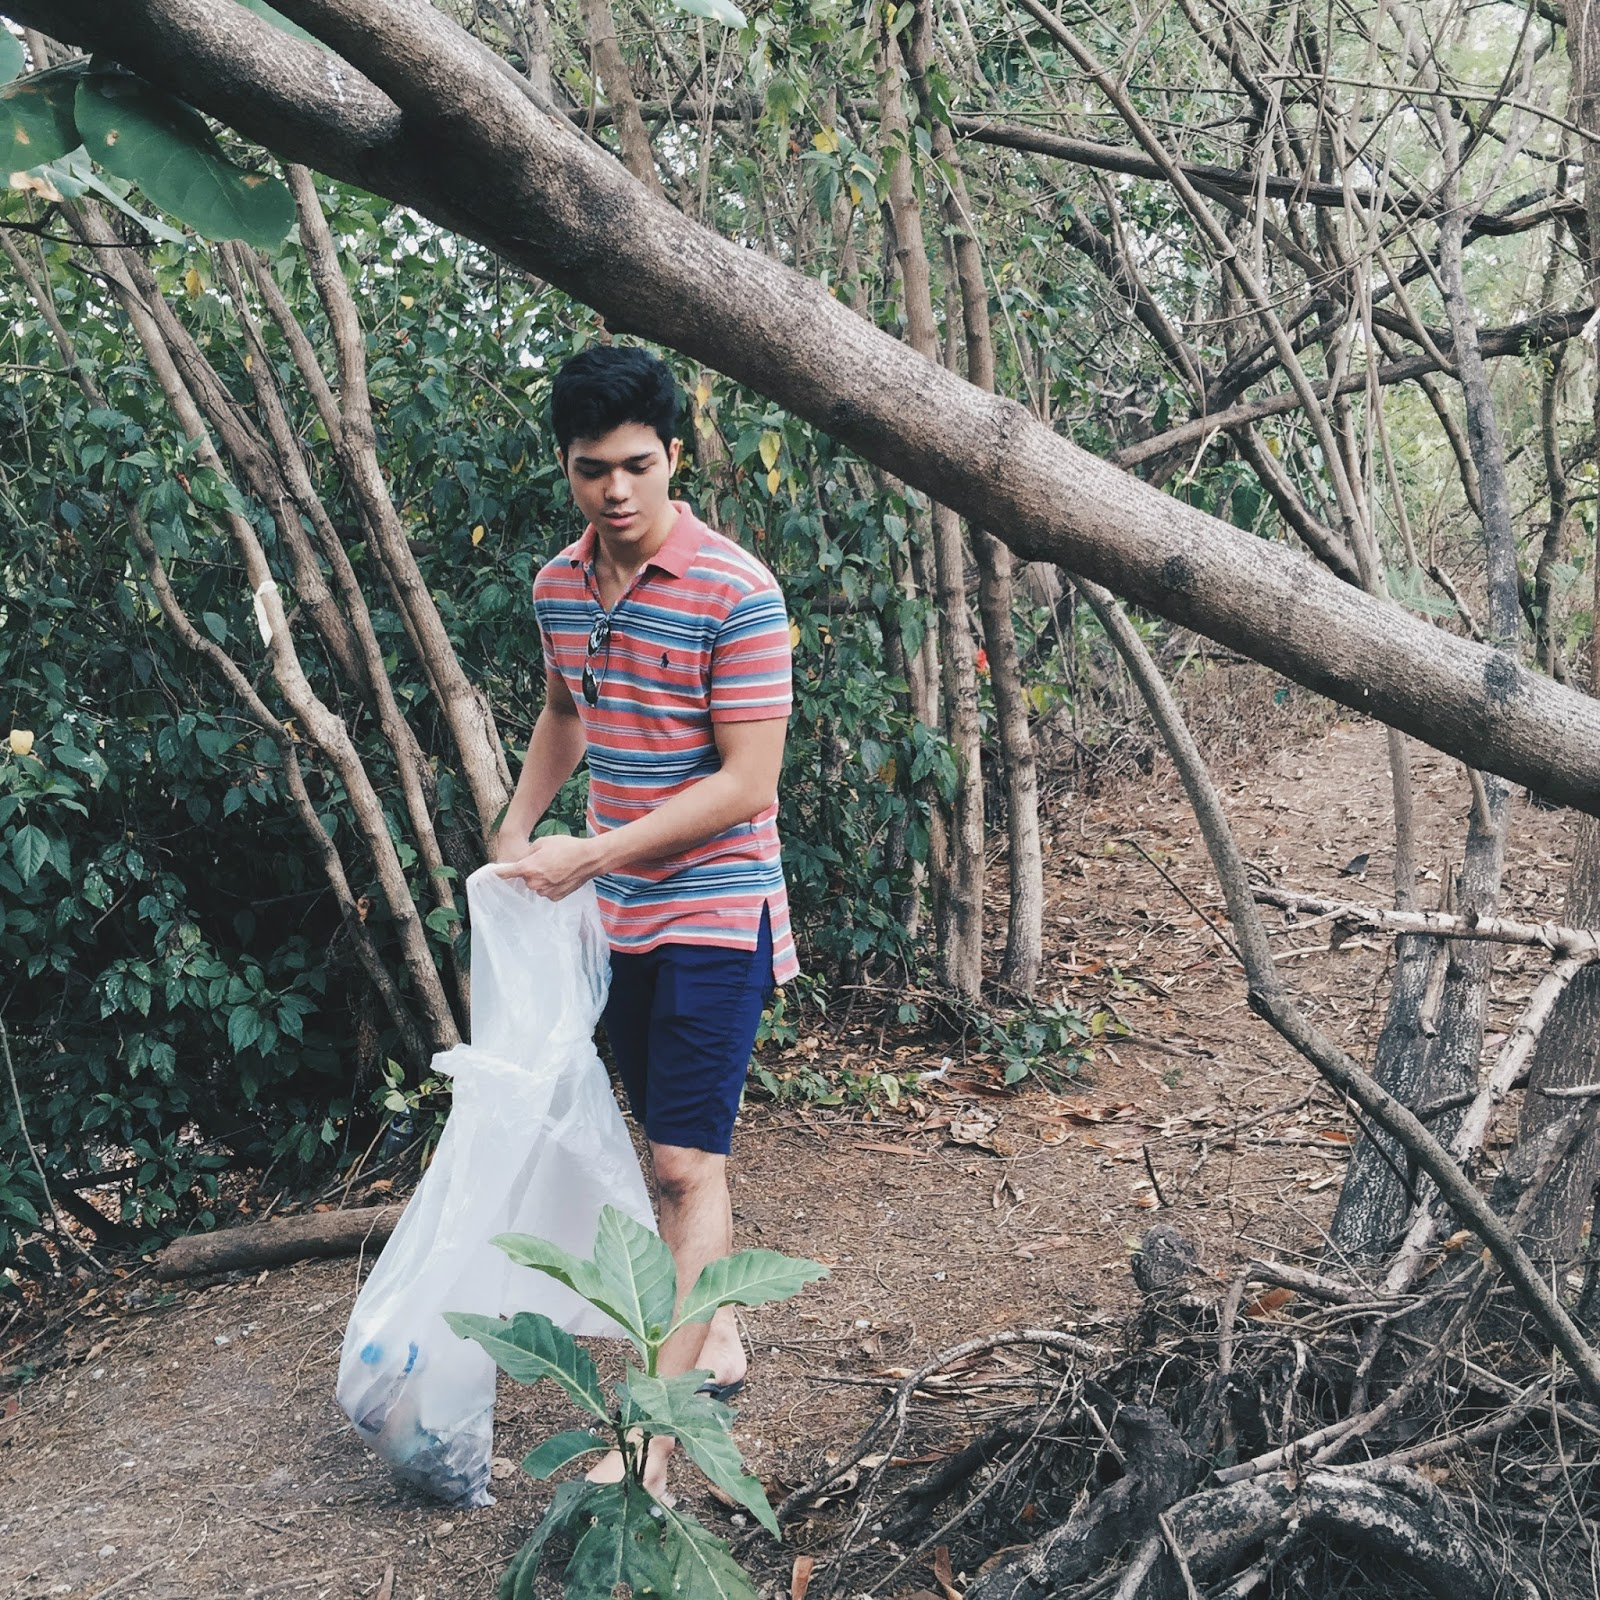 elmo magalona birthday coastal cleanup in manila bay